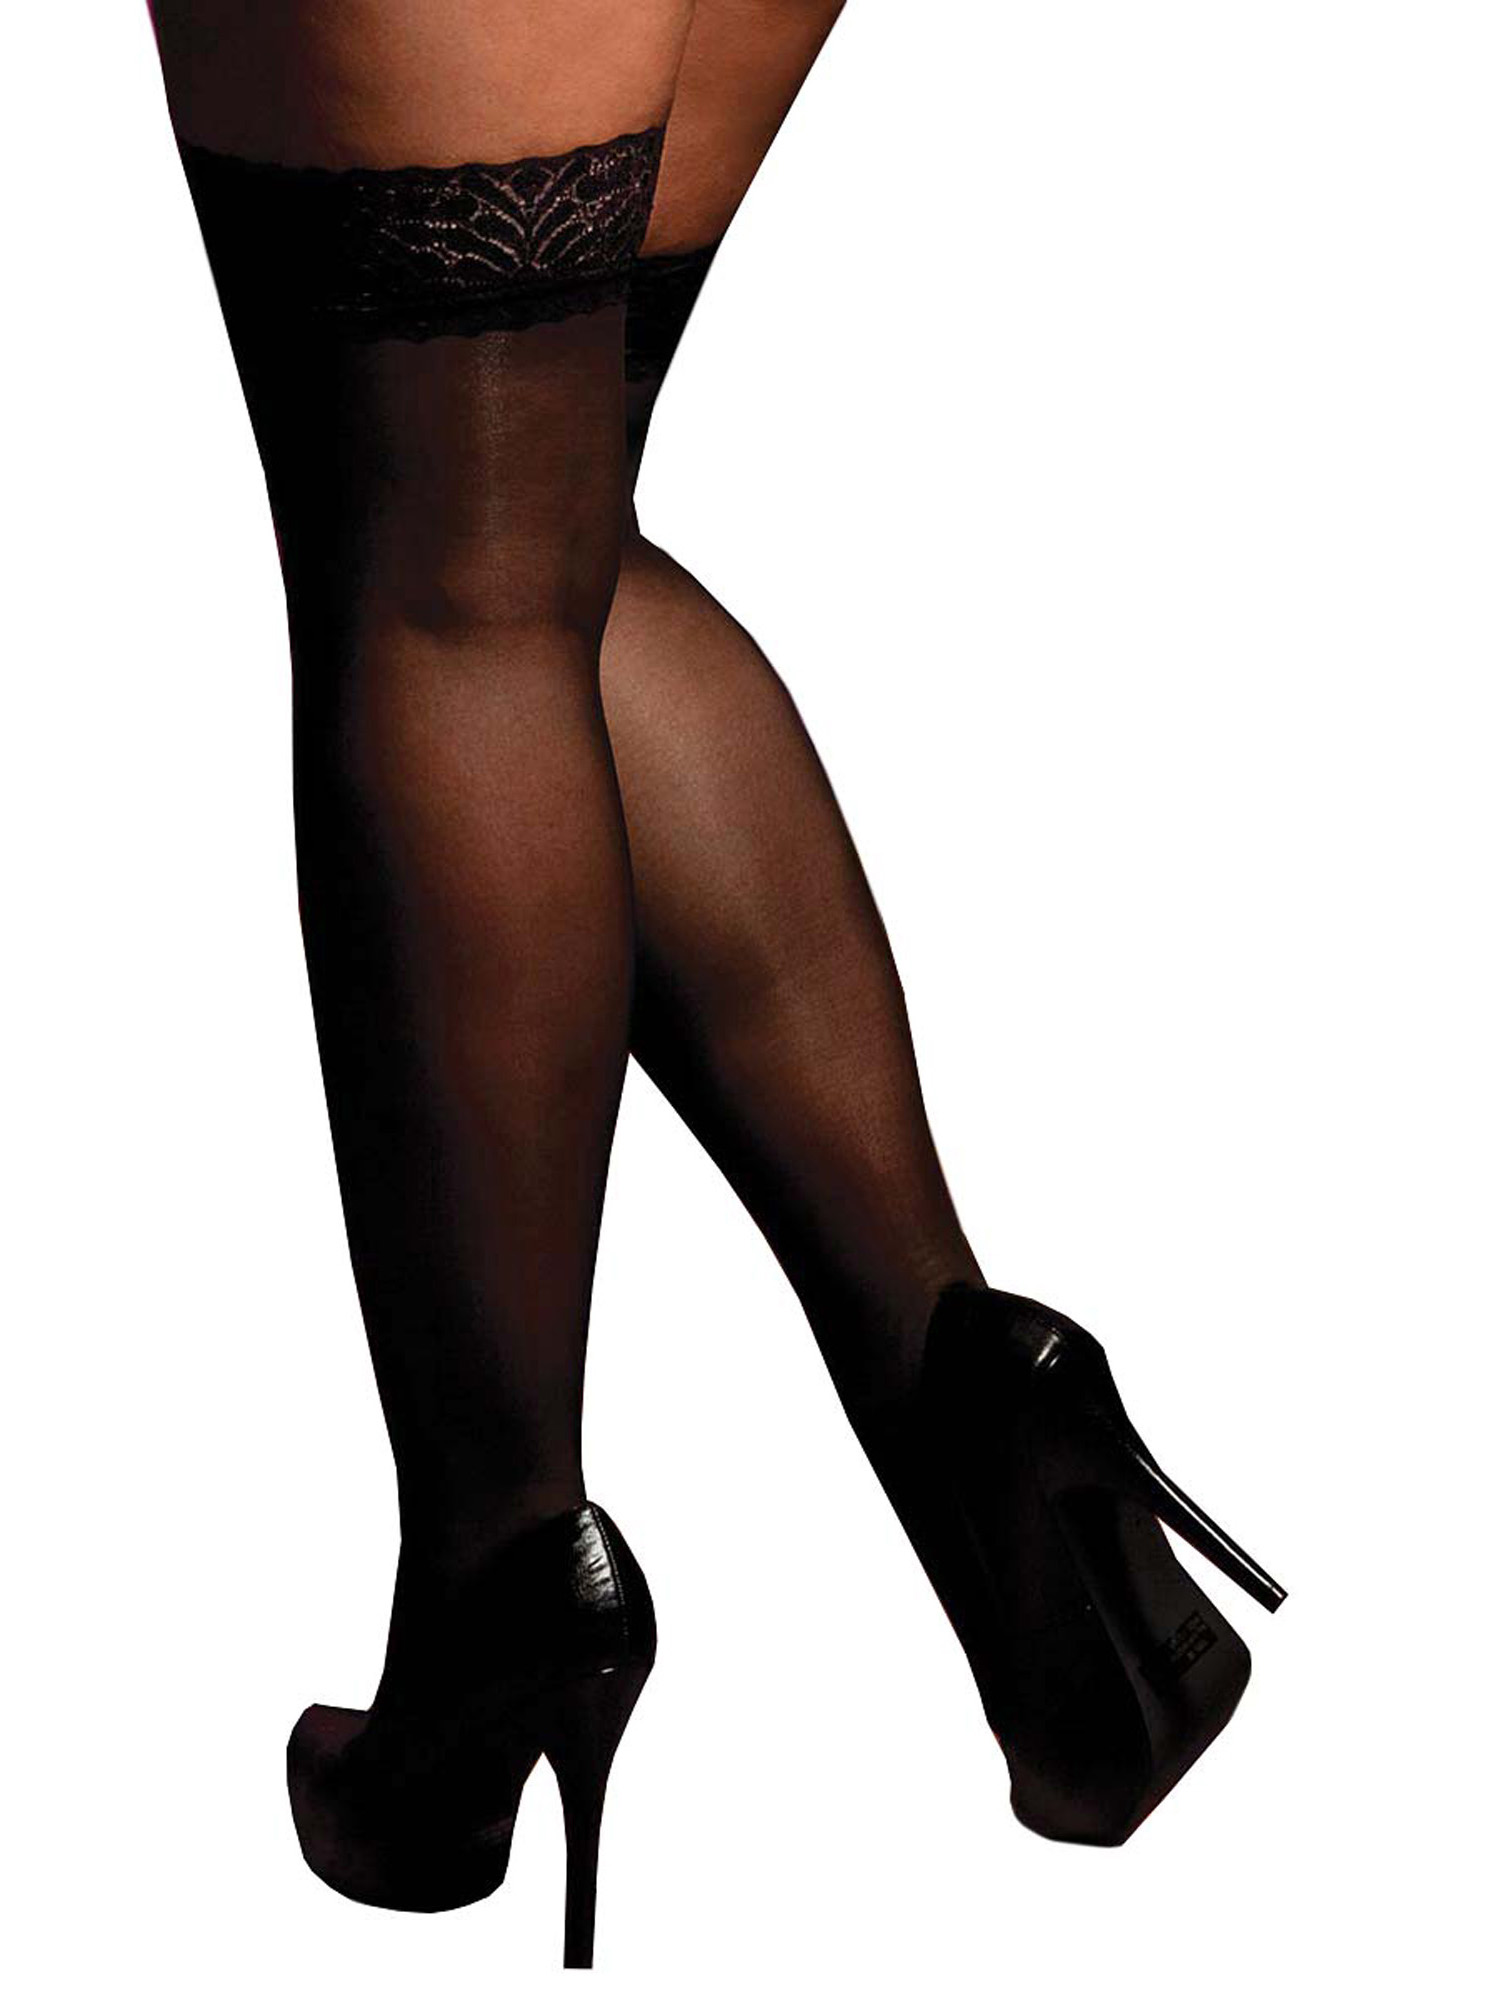 Plus-Size-Full-Figure-Sheer-Lace-Top-Thigh-High-Stockings thumbnail 5